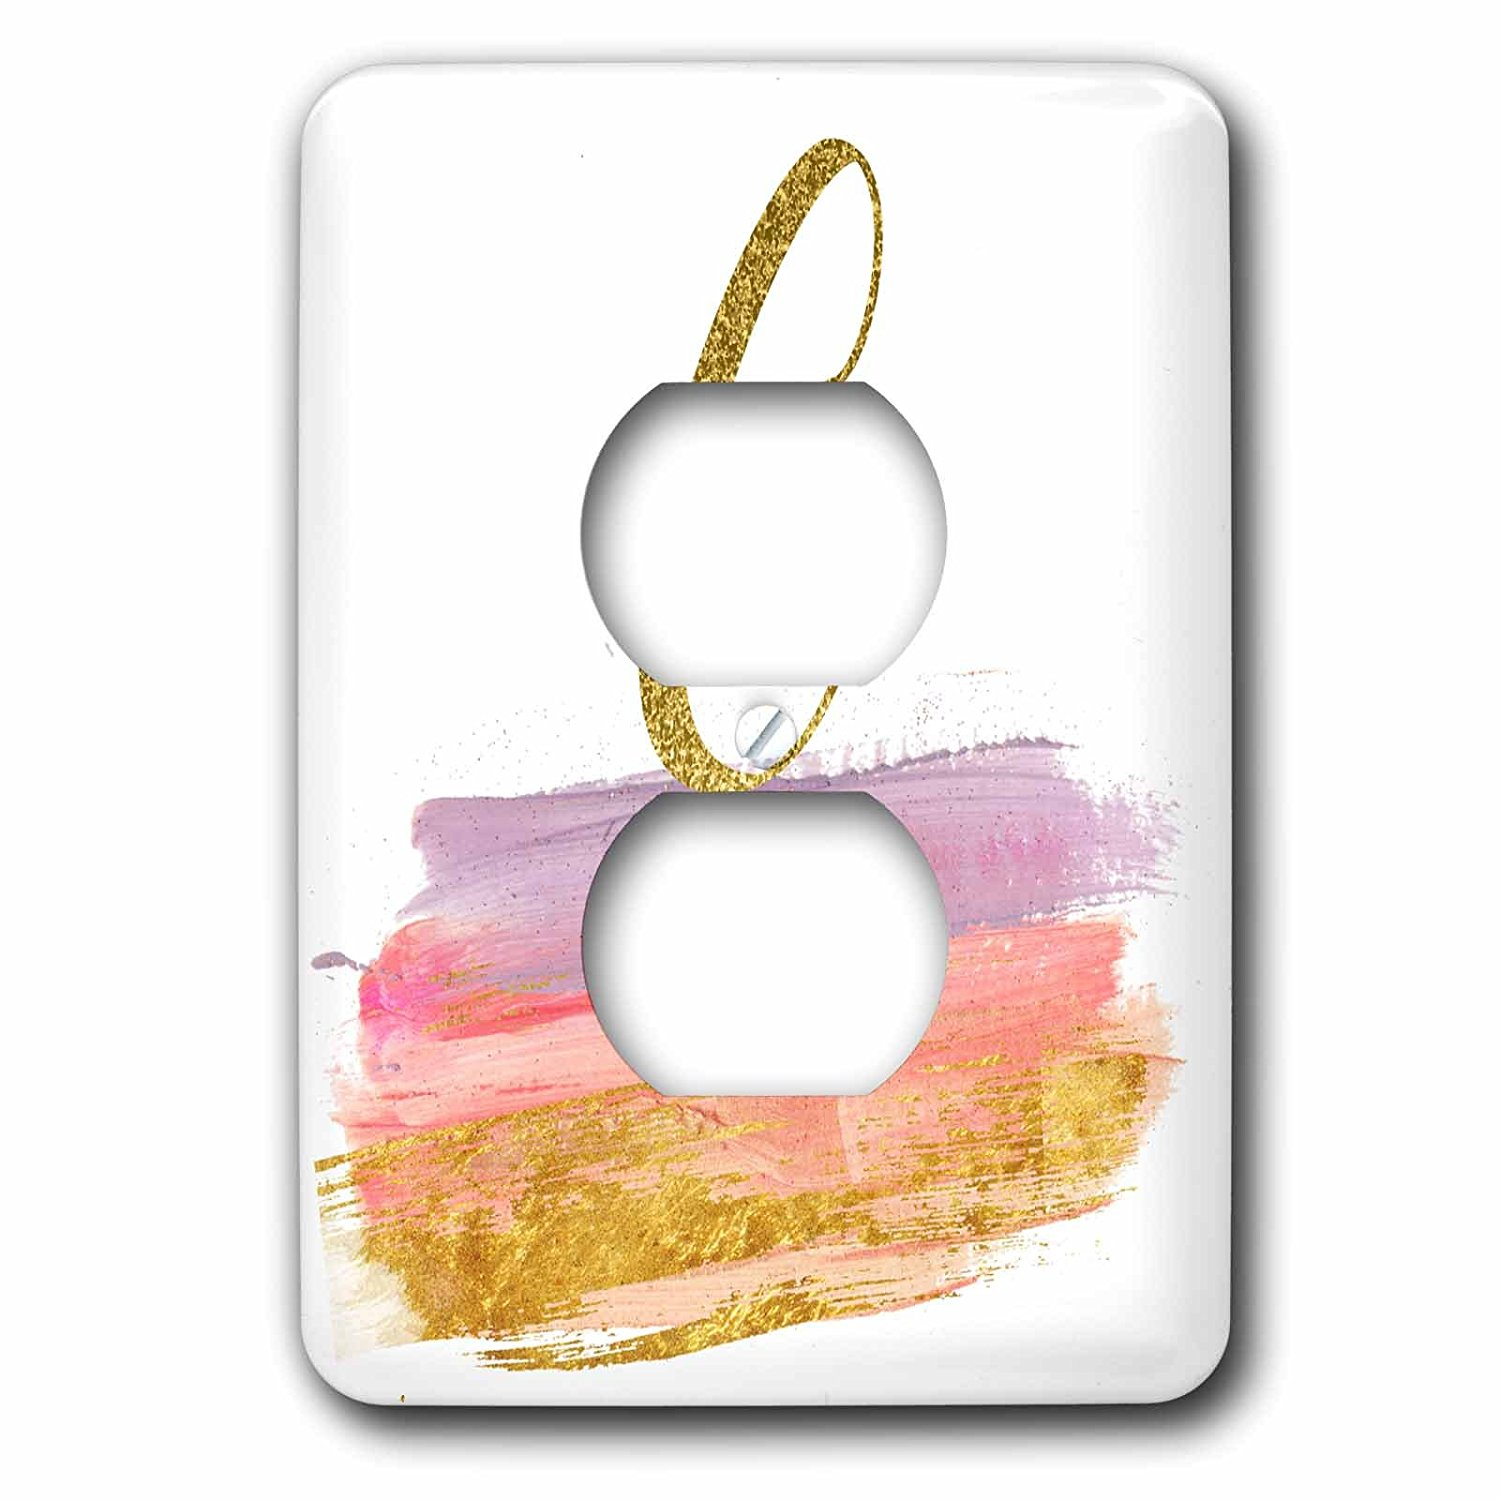 3dRose Anne Marie Baugh - Monograms - Modern Purple, Pink, Gold, Brush Strokes Monogram G - Light Switch Covers - 2 plug outlet cover (lsp_267747_6)